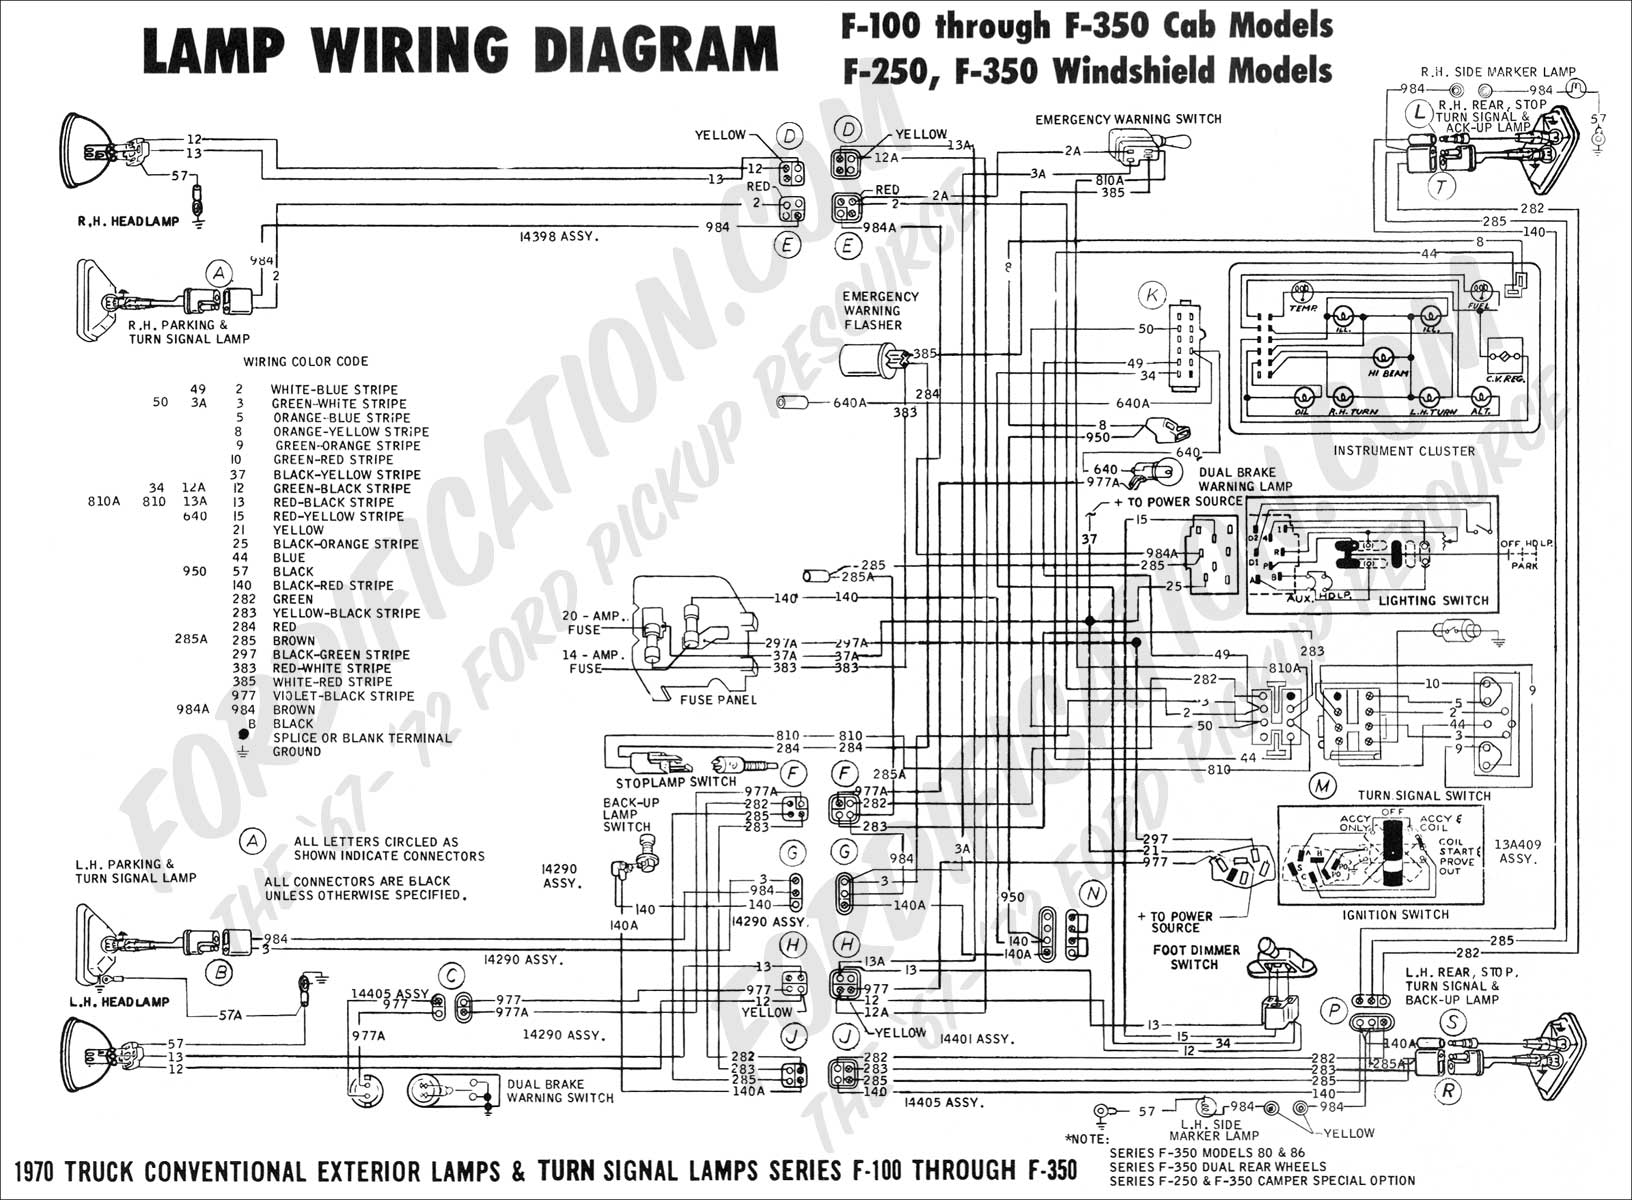 wiring diagram_70ext lights01 ford truck technical drawings and schematics section h wiring 1997 ford f250 wiring diagram at gsmportal.co